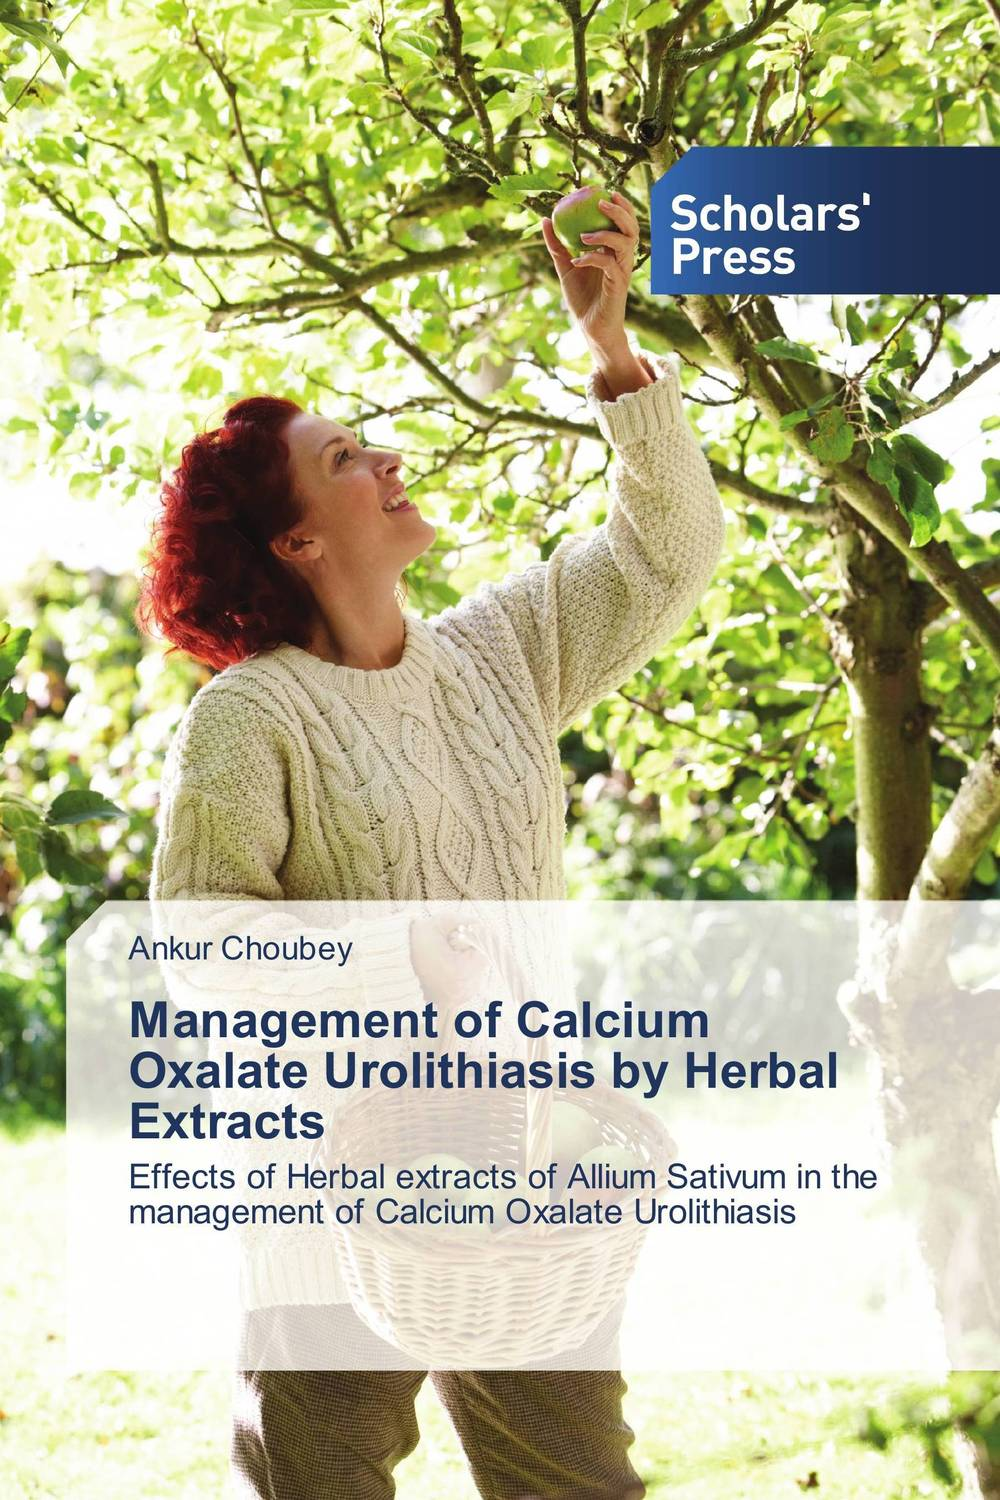 Management of Calcium Oxalate Urolithiasis by Herbal Extracts adding value to the citrus pulp by enzyme biotechnology production